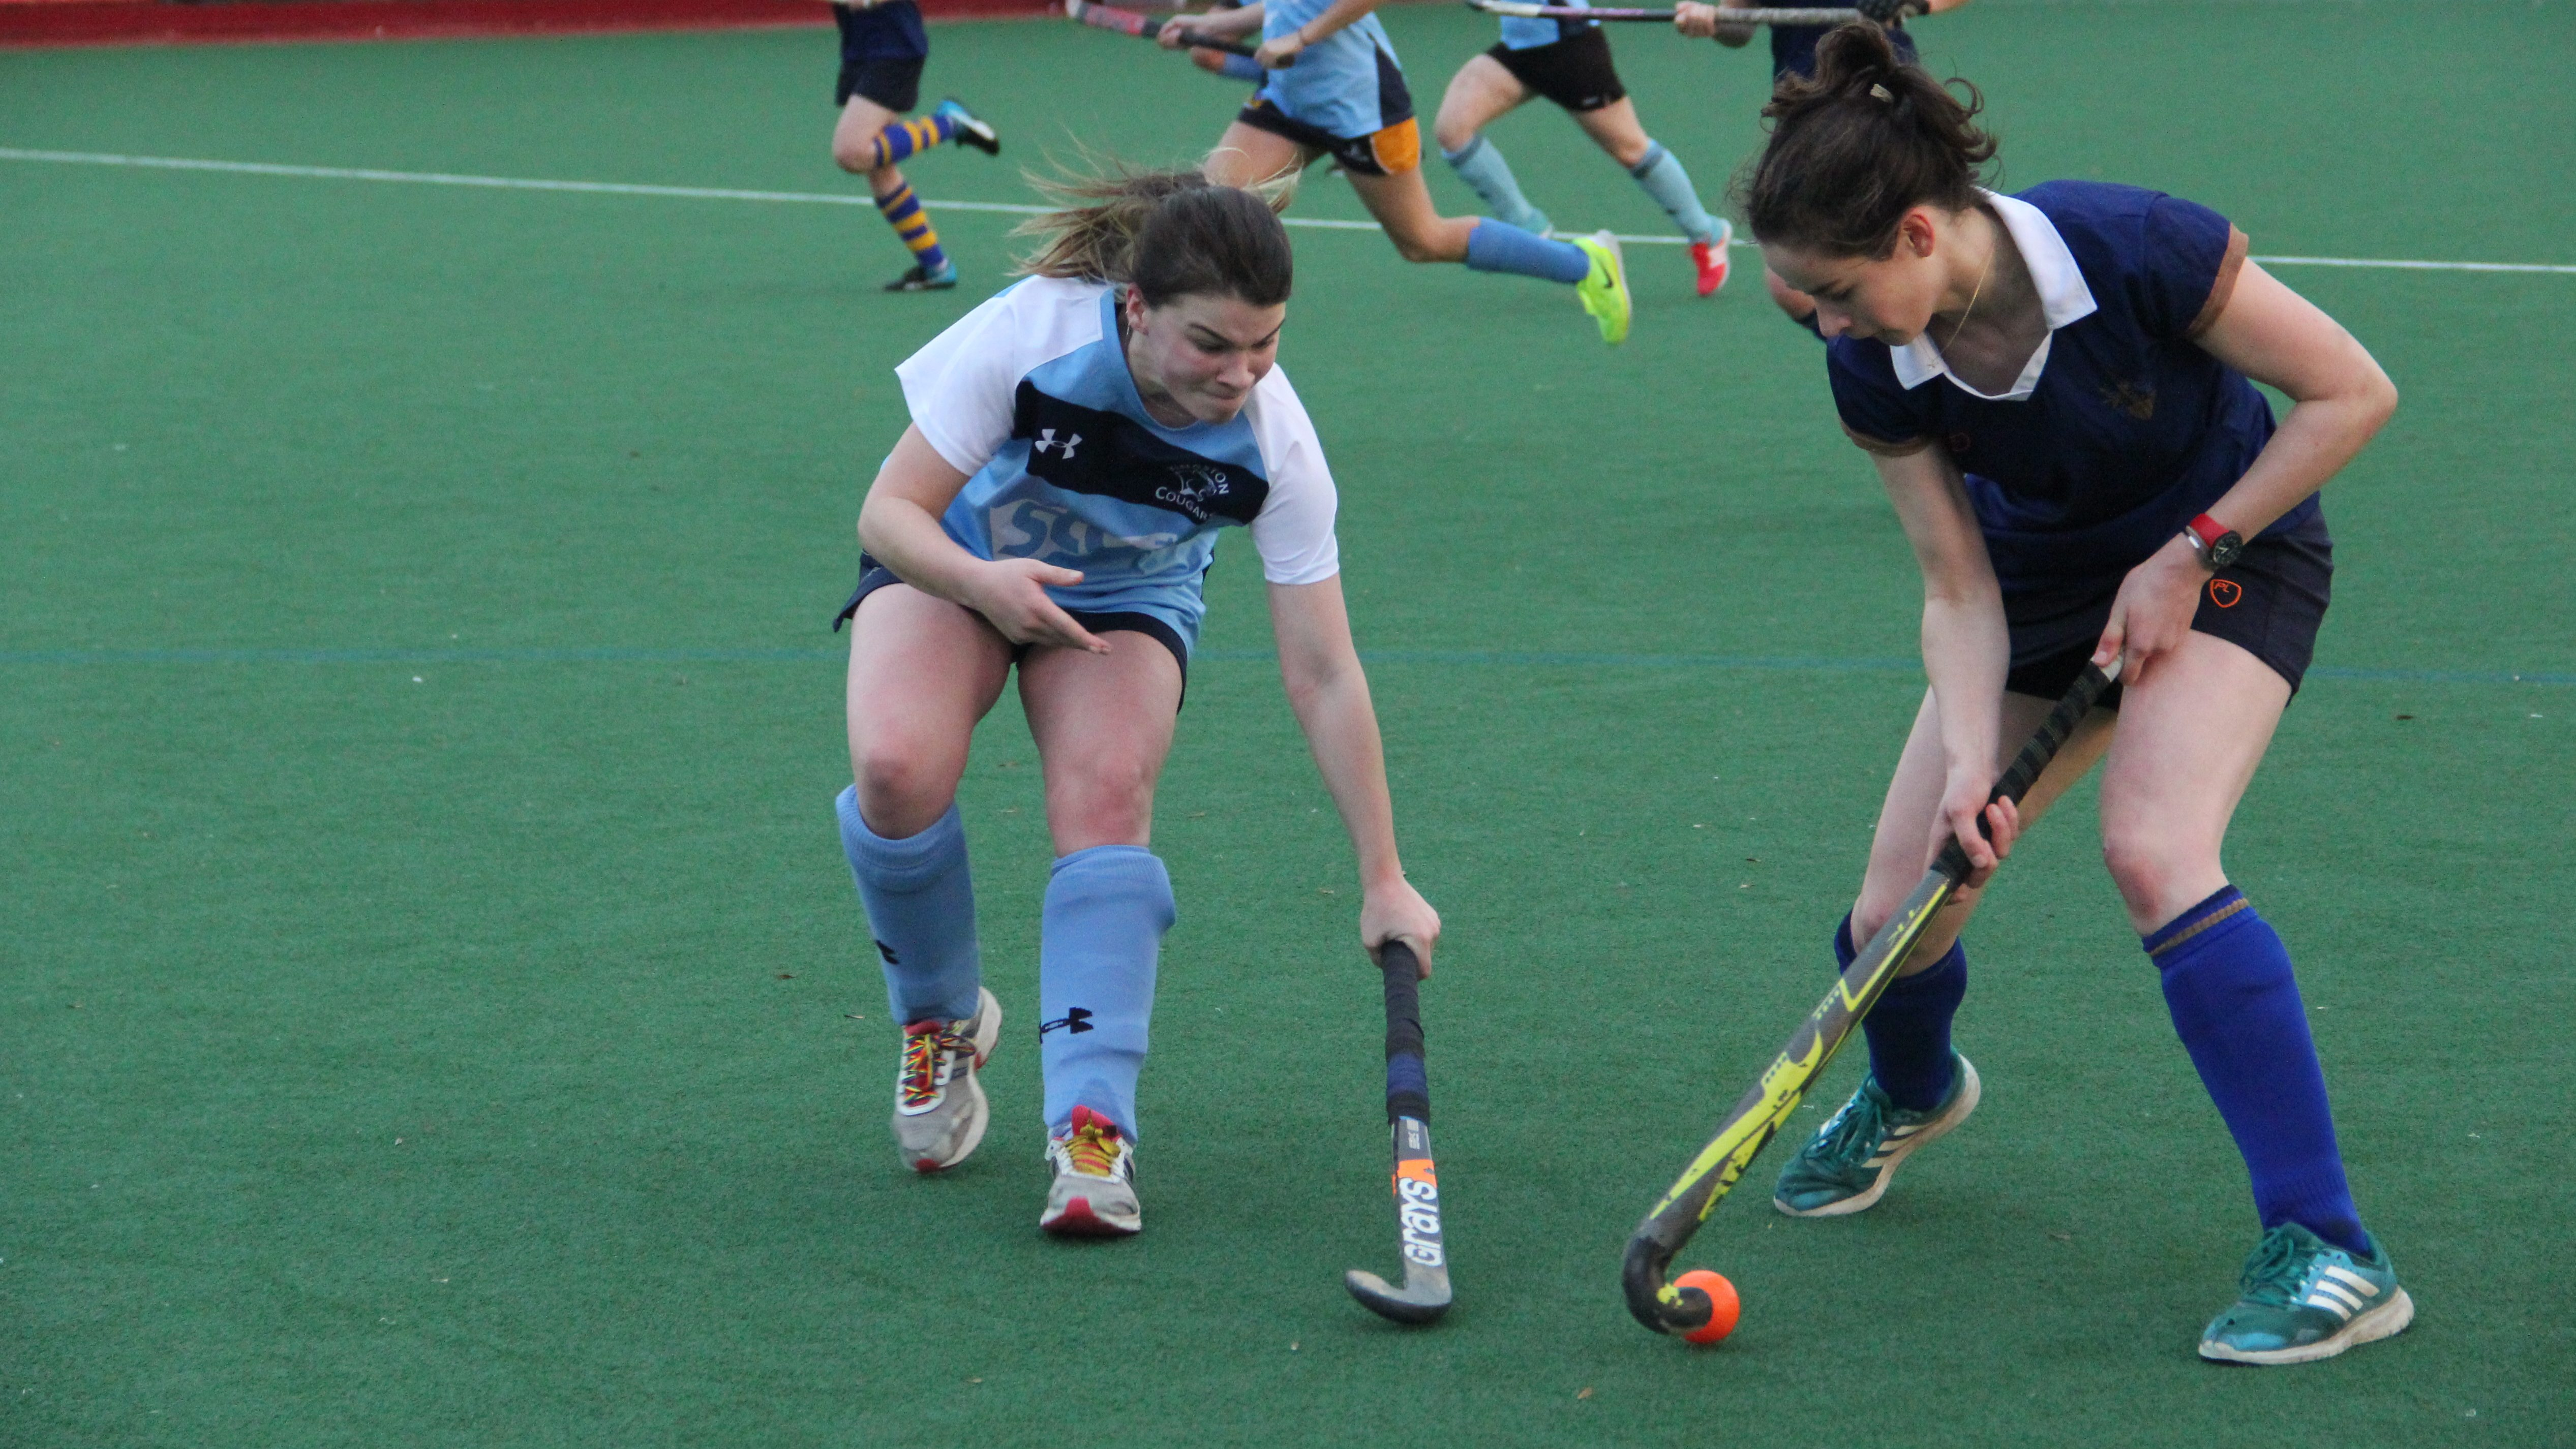 Kingston women's hockey out of cup after Surrey thrashing